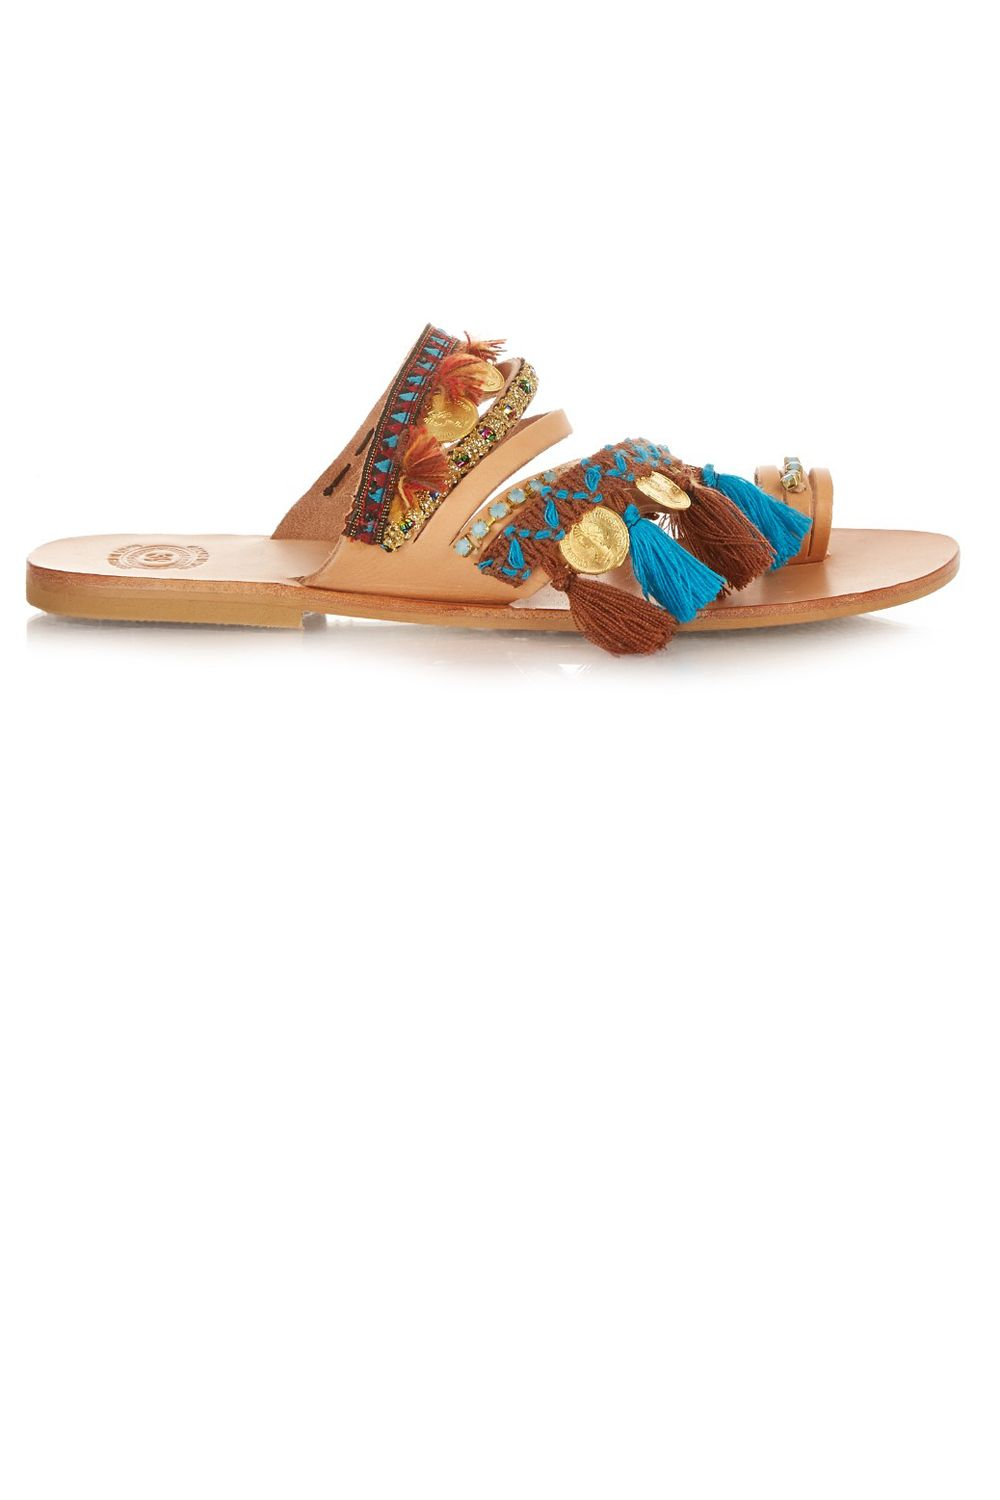 http://www.marieclaire.co.uk/fashion/shopping/summer-sandals-the-marie-claire-edit-216663 24 sandals to wear this summer by Marie Claire UK